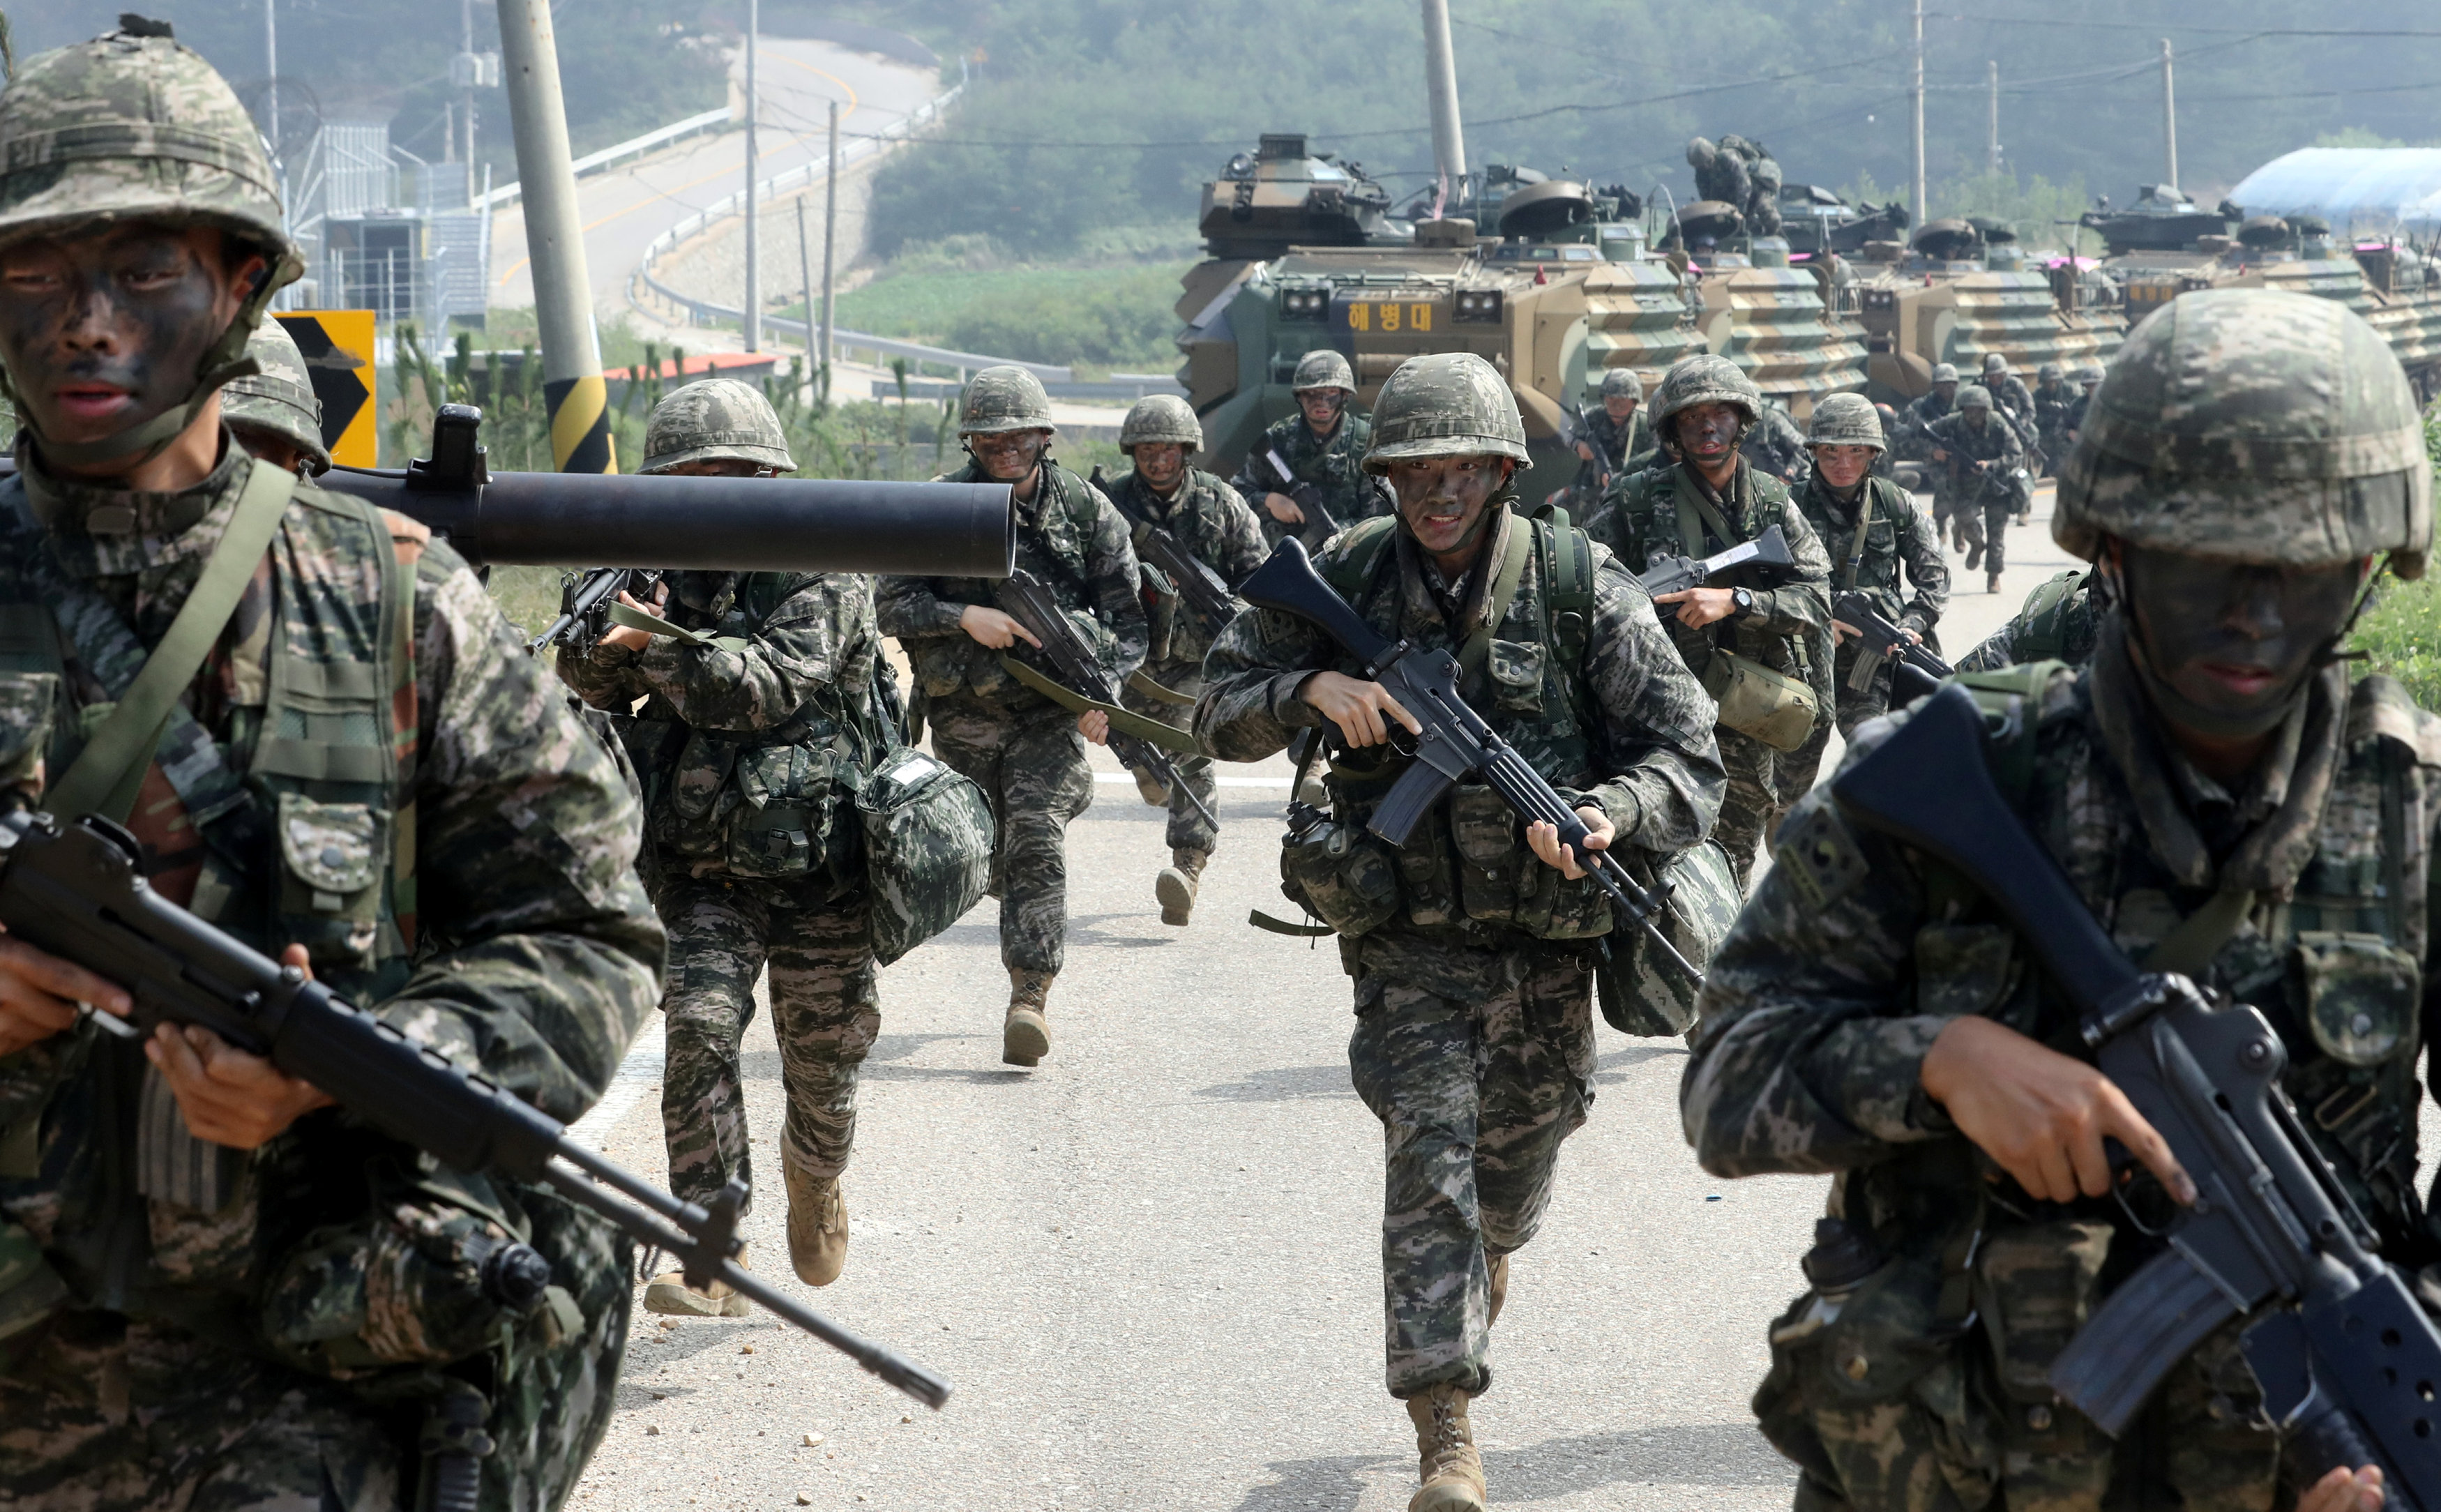 South Korean marines take part in a military exercise on South Korea's Baengnyeong Island, near the disputed sea border with the north on Sept. 7, 2017. (Choi Jae-gu/Yonhap via REUTERS)